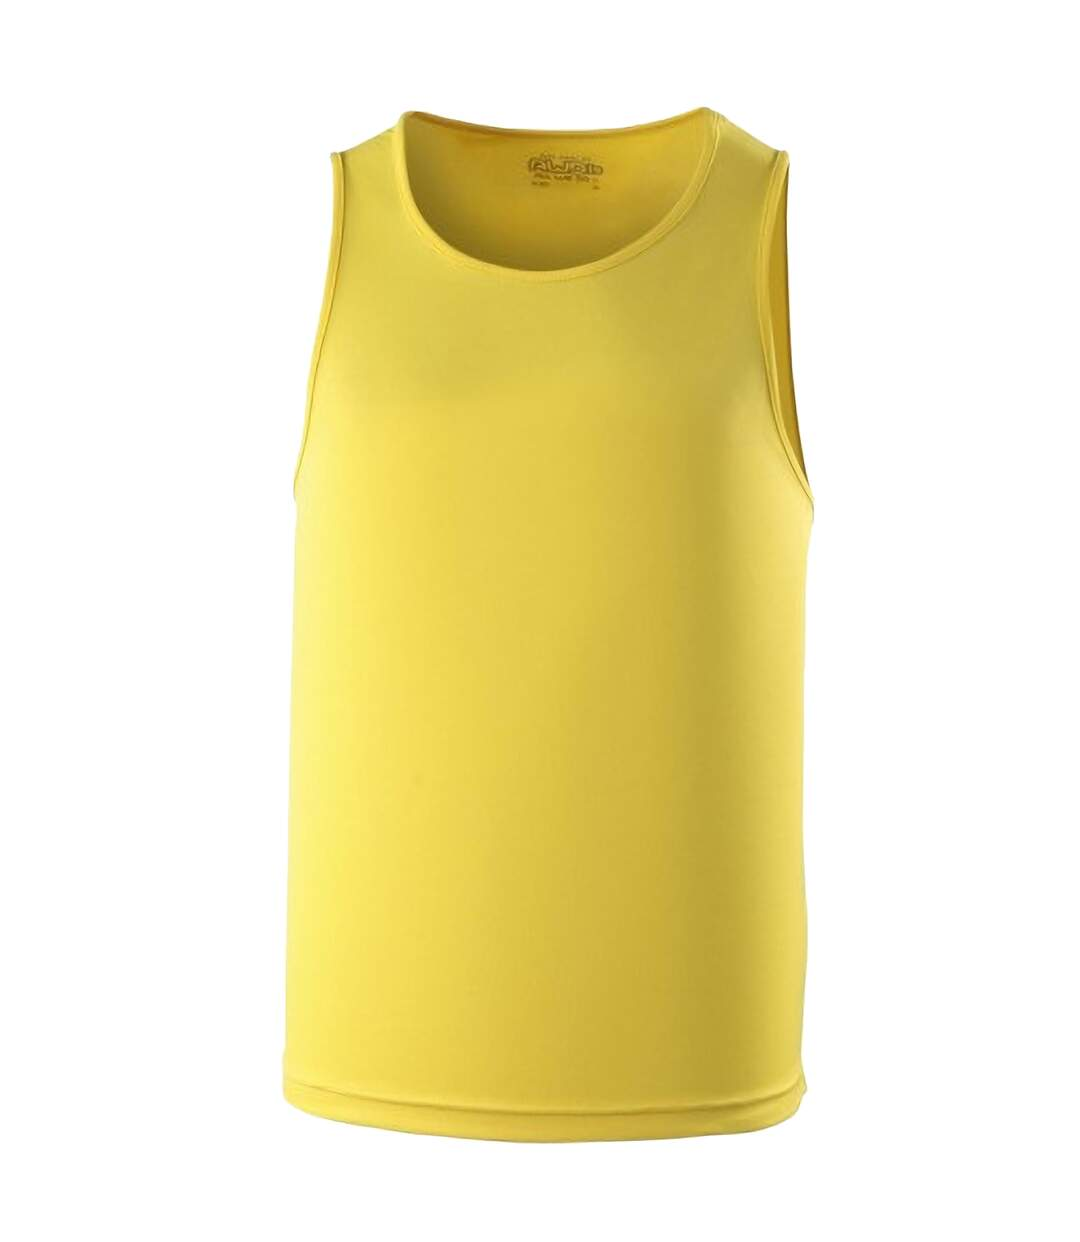 Just Cool Mens Sports Gym Plain Tank / Vest Top (French Navy) - UTRW687